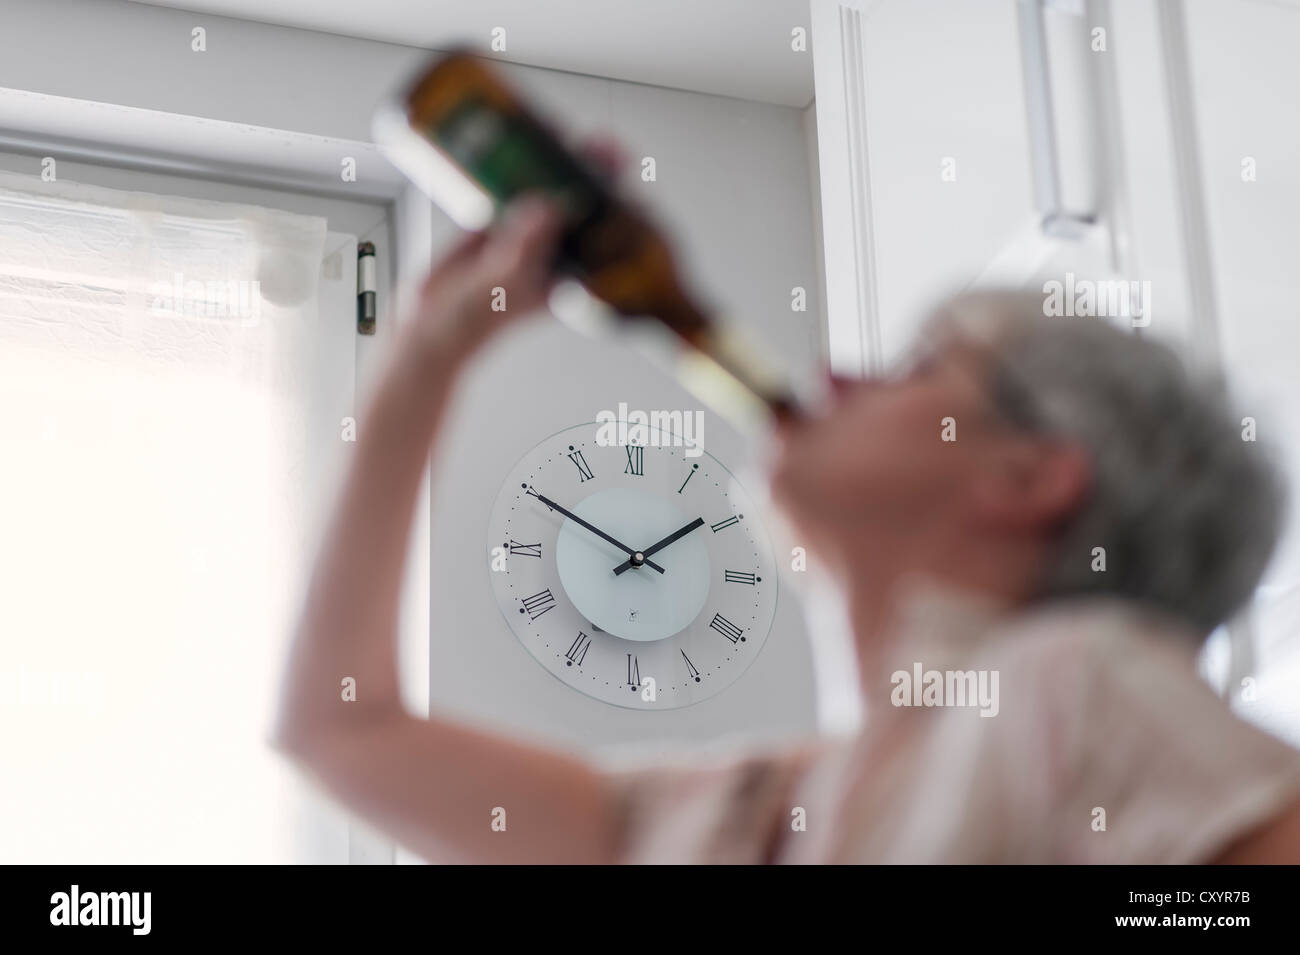 Alcohol-dependent woman, alcoholic, drinking a bottle of beer in broad daylight - Stock Image